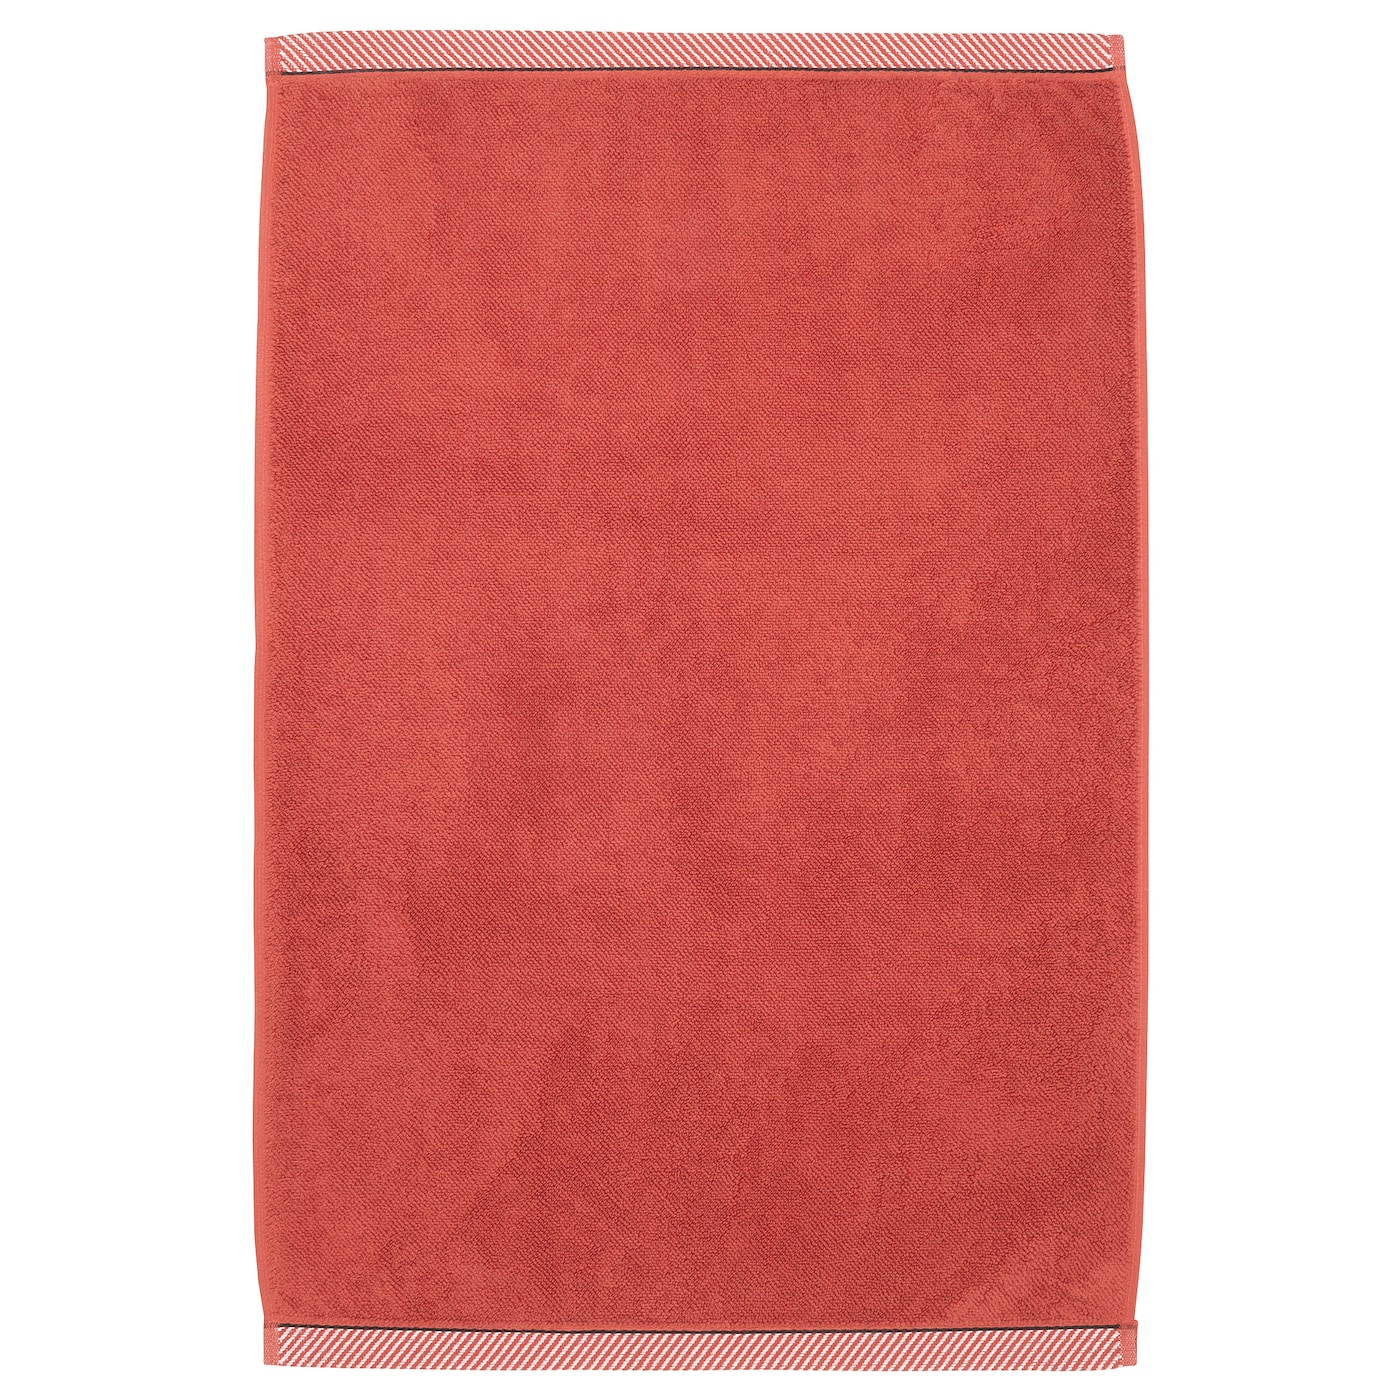 IKEA VIKFJÄRD bath mat Soft terry bath mat with high absorption capacity (weight 1050 g/m²).